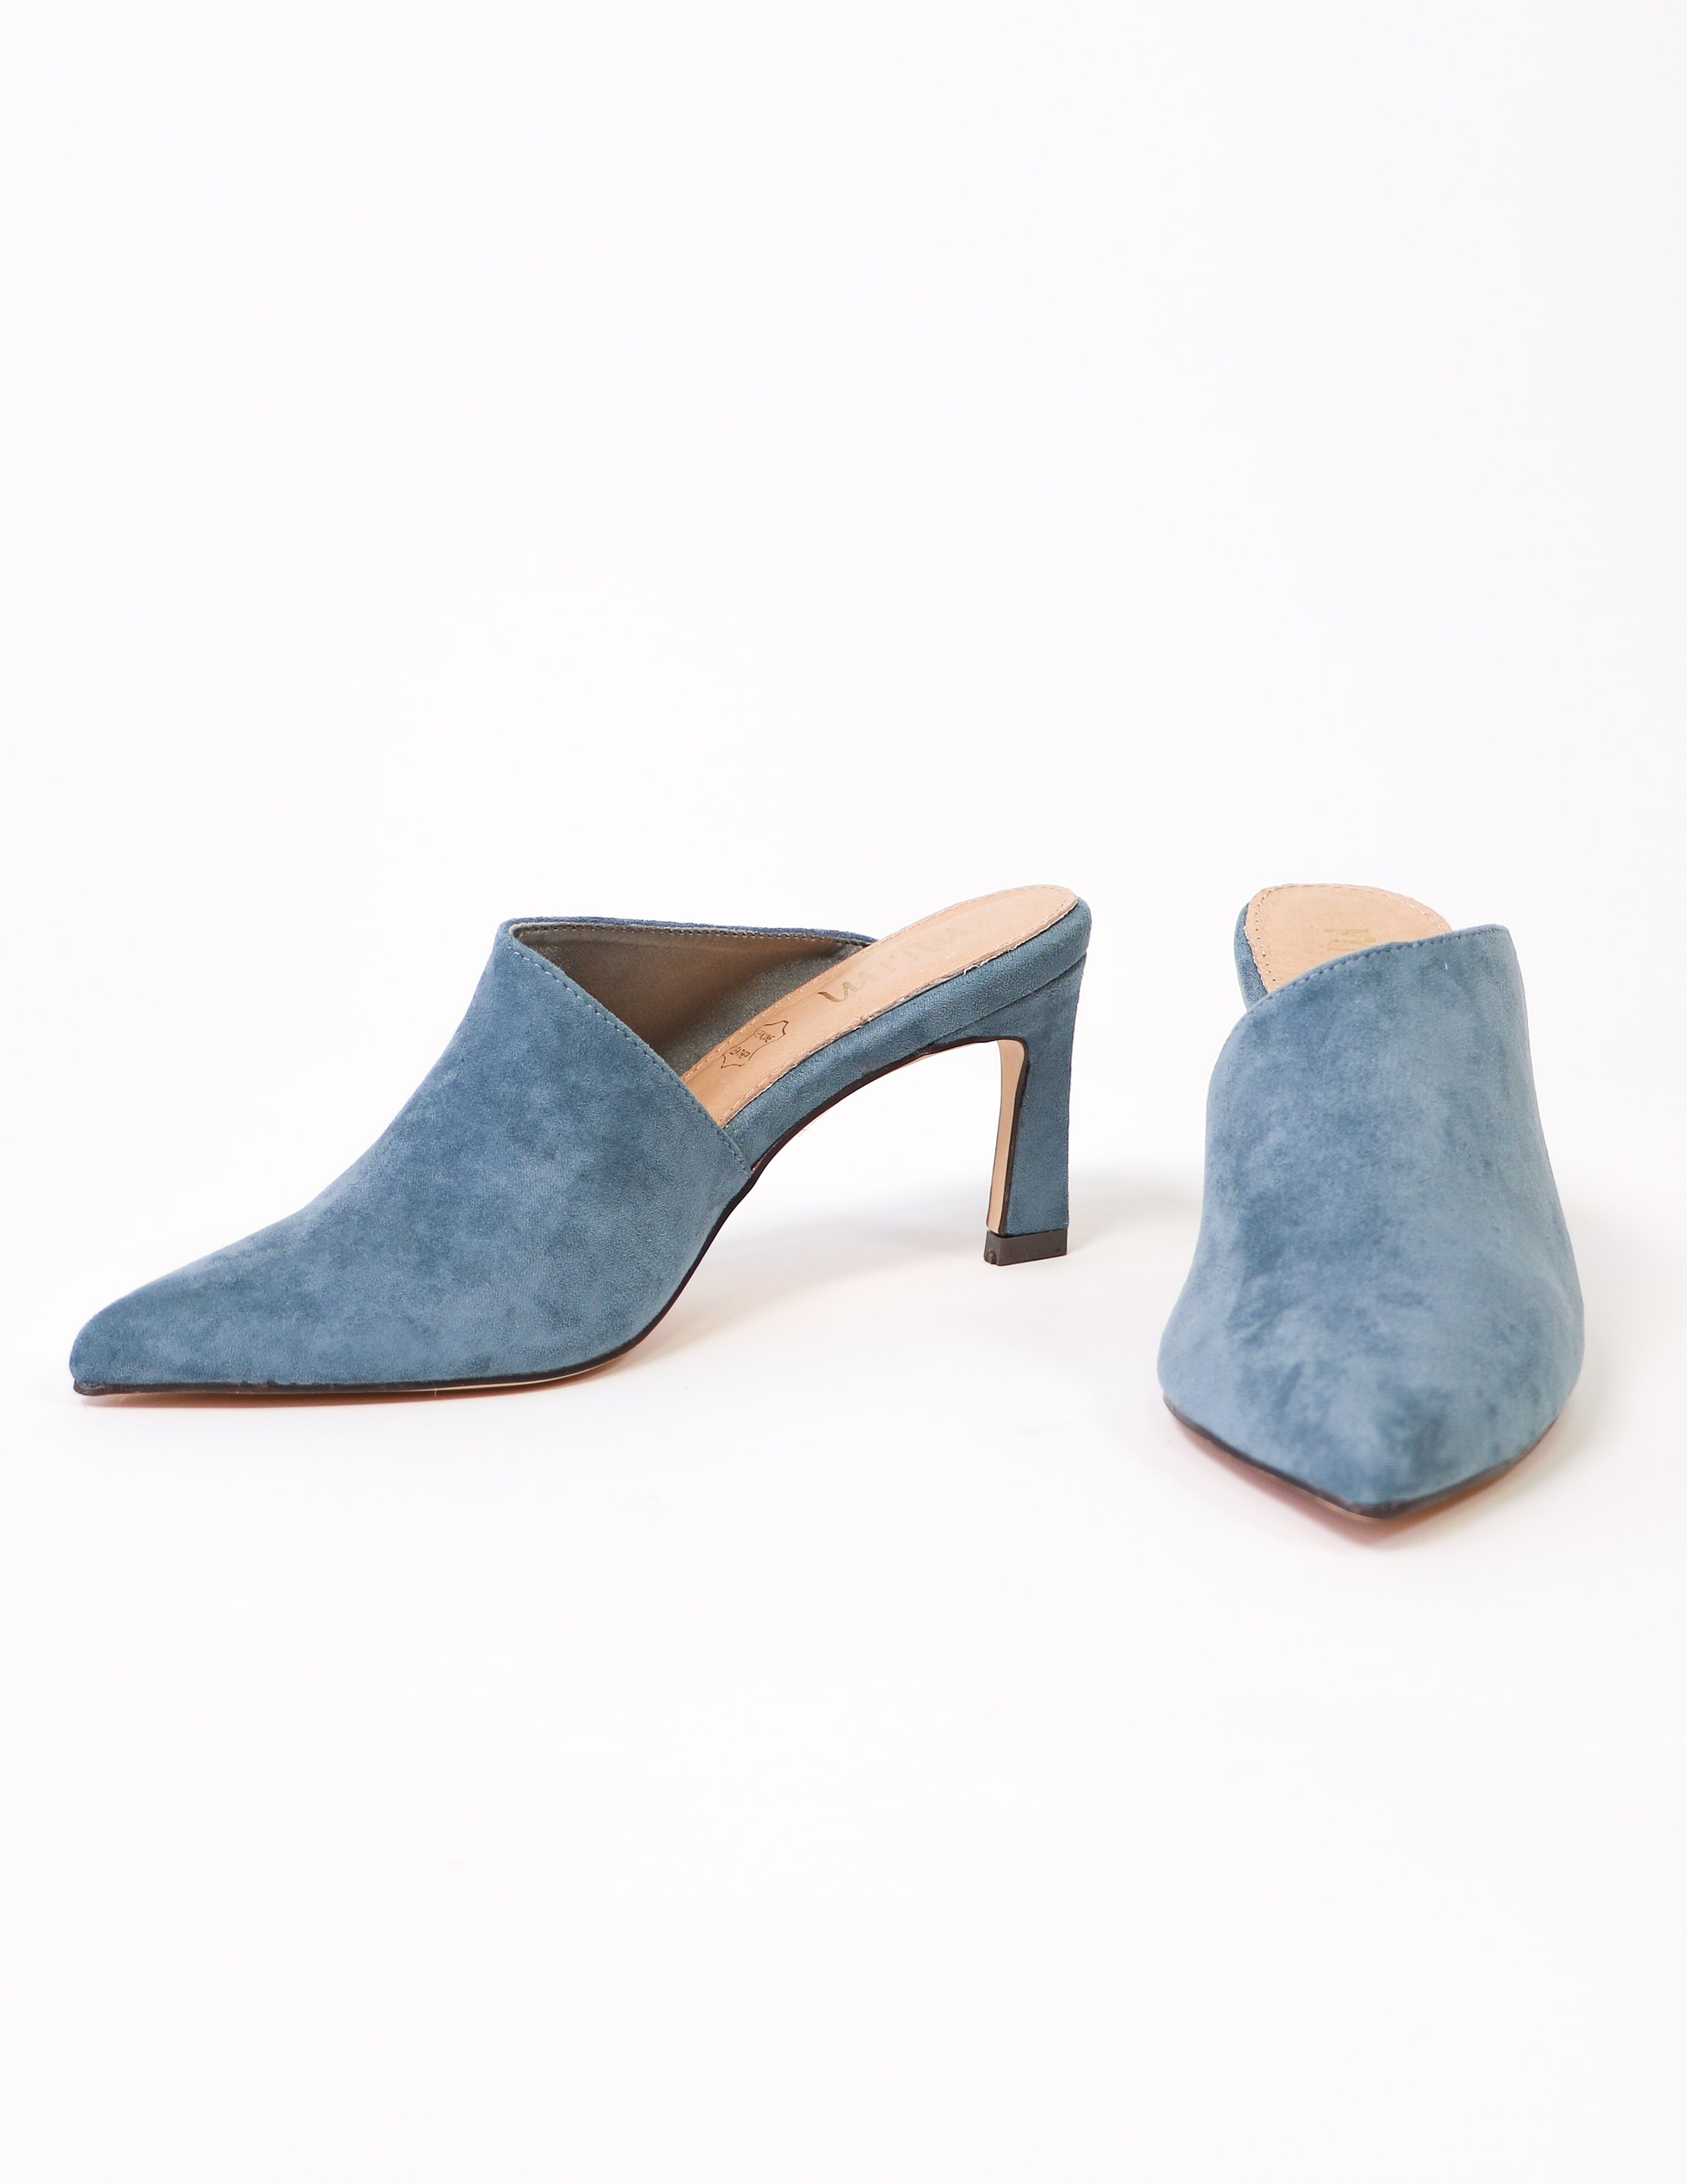 Side and front view of the blue suede kitten heel - elle bleu shoes